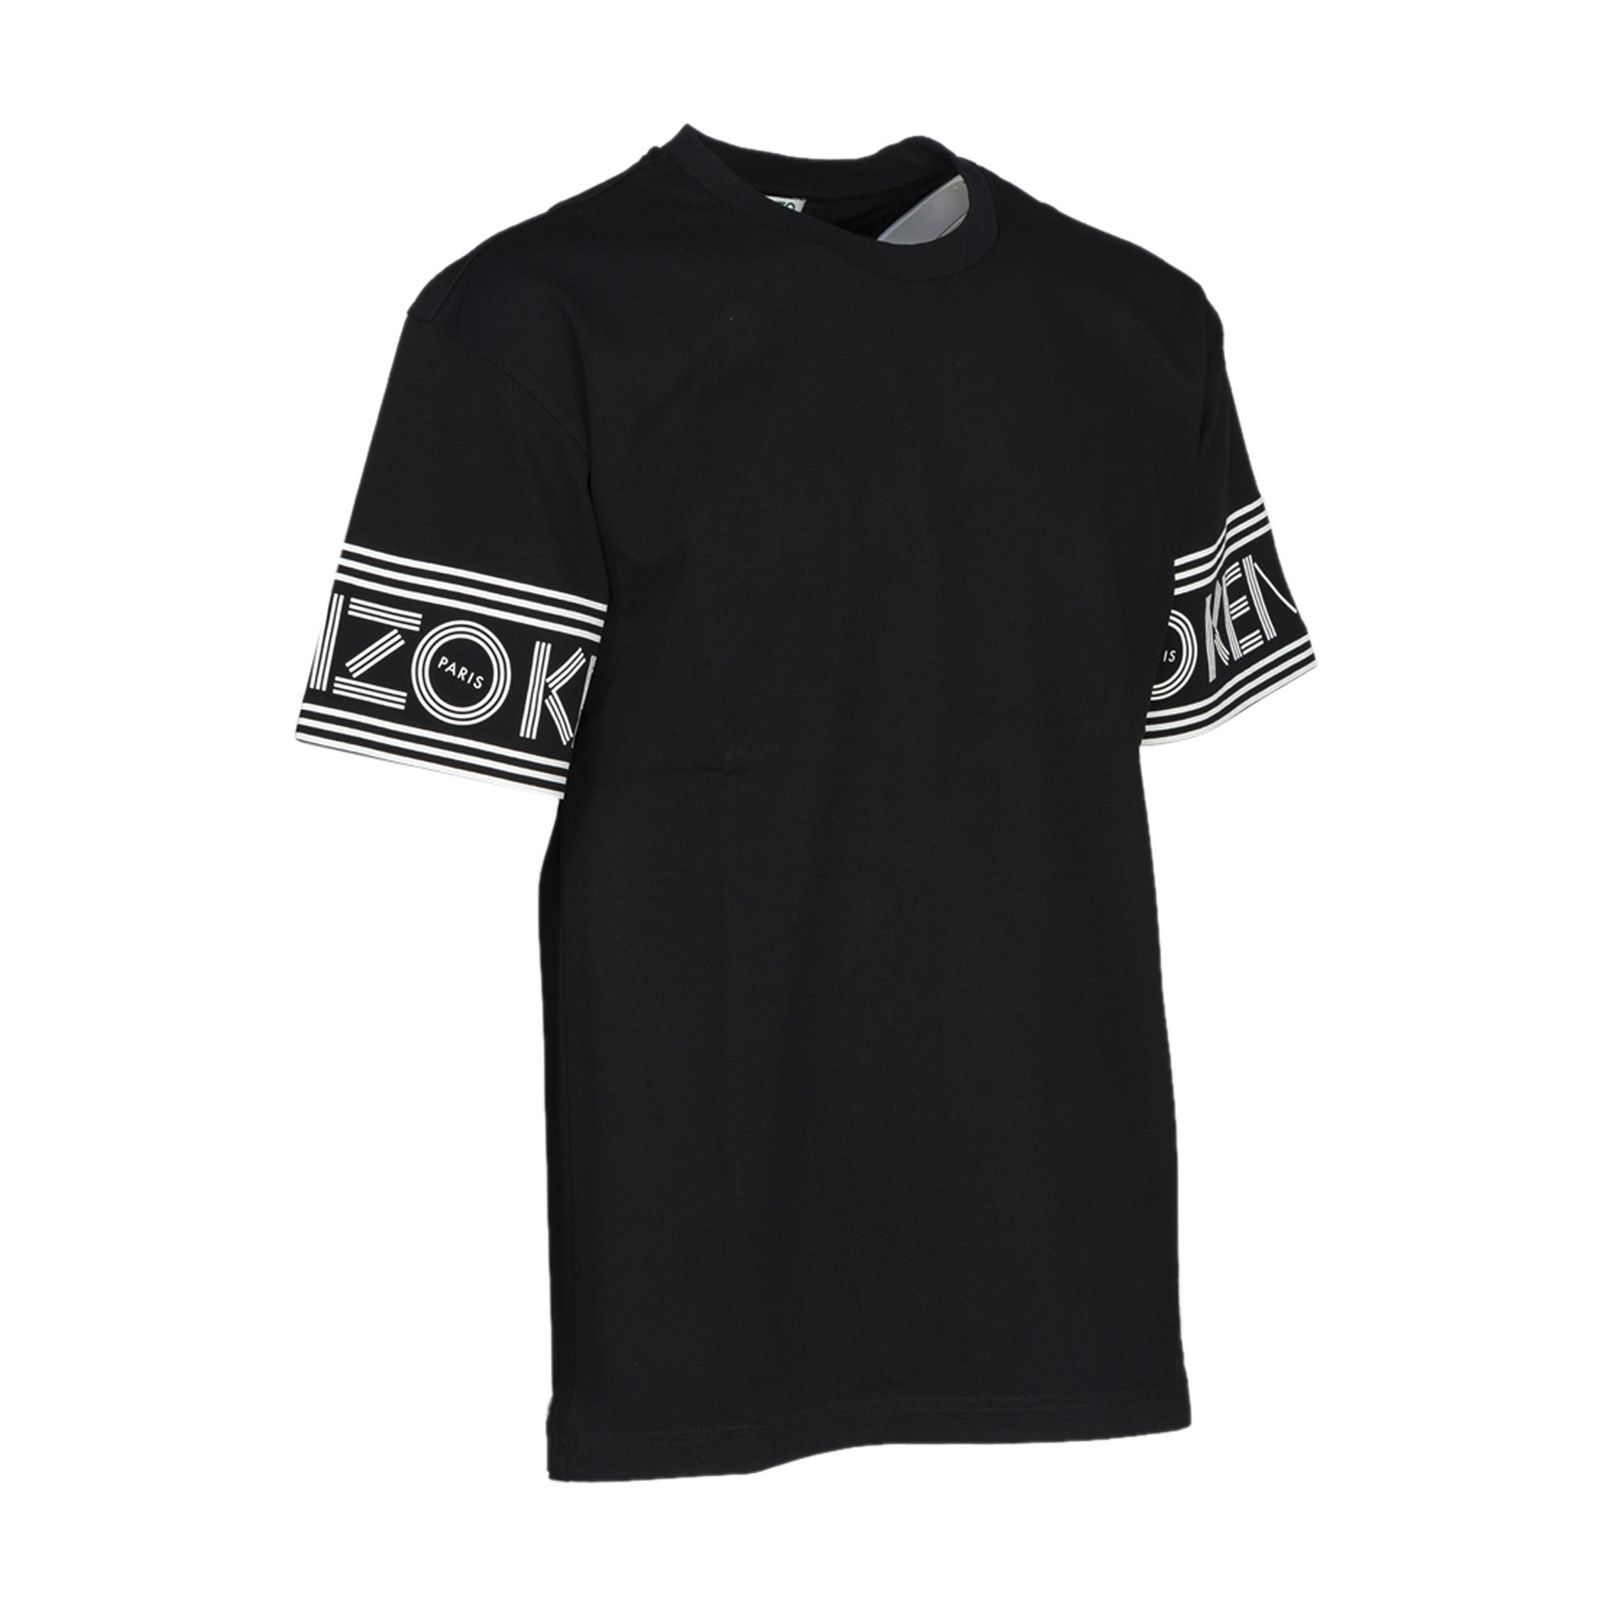 kenzo kenzo logo sleeve t shirt black men 39 s short sleeve t shirts italist. Black Bedroom Furniture Sets. Home Design Ideas